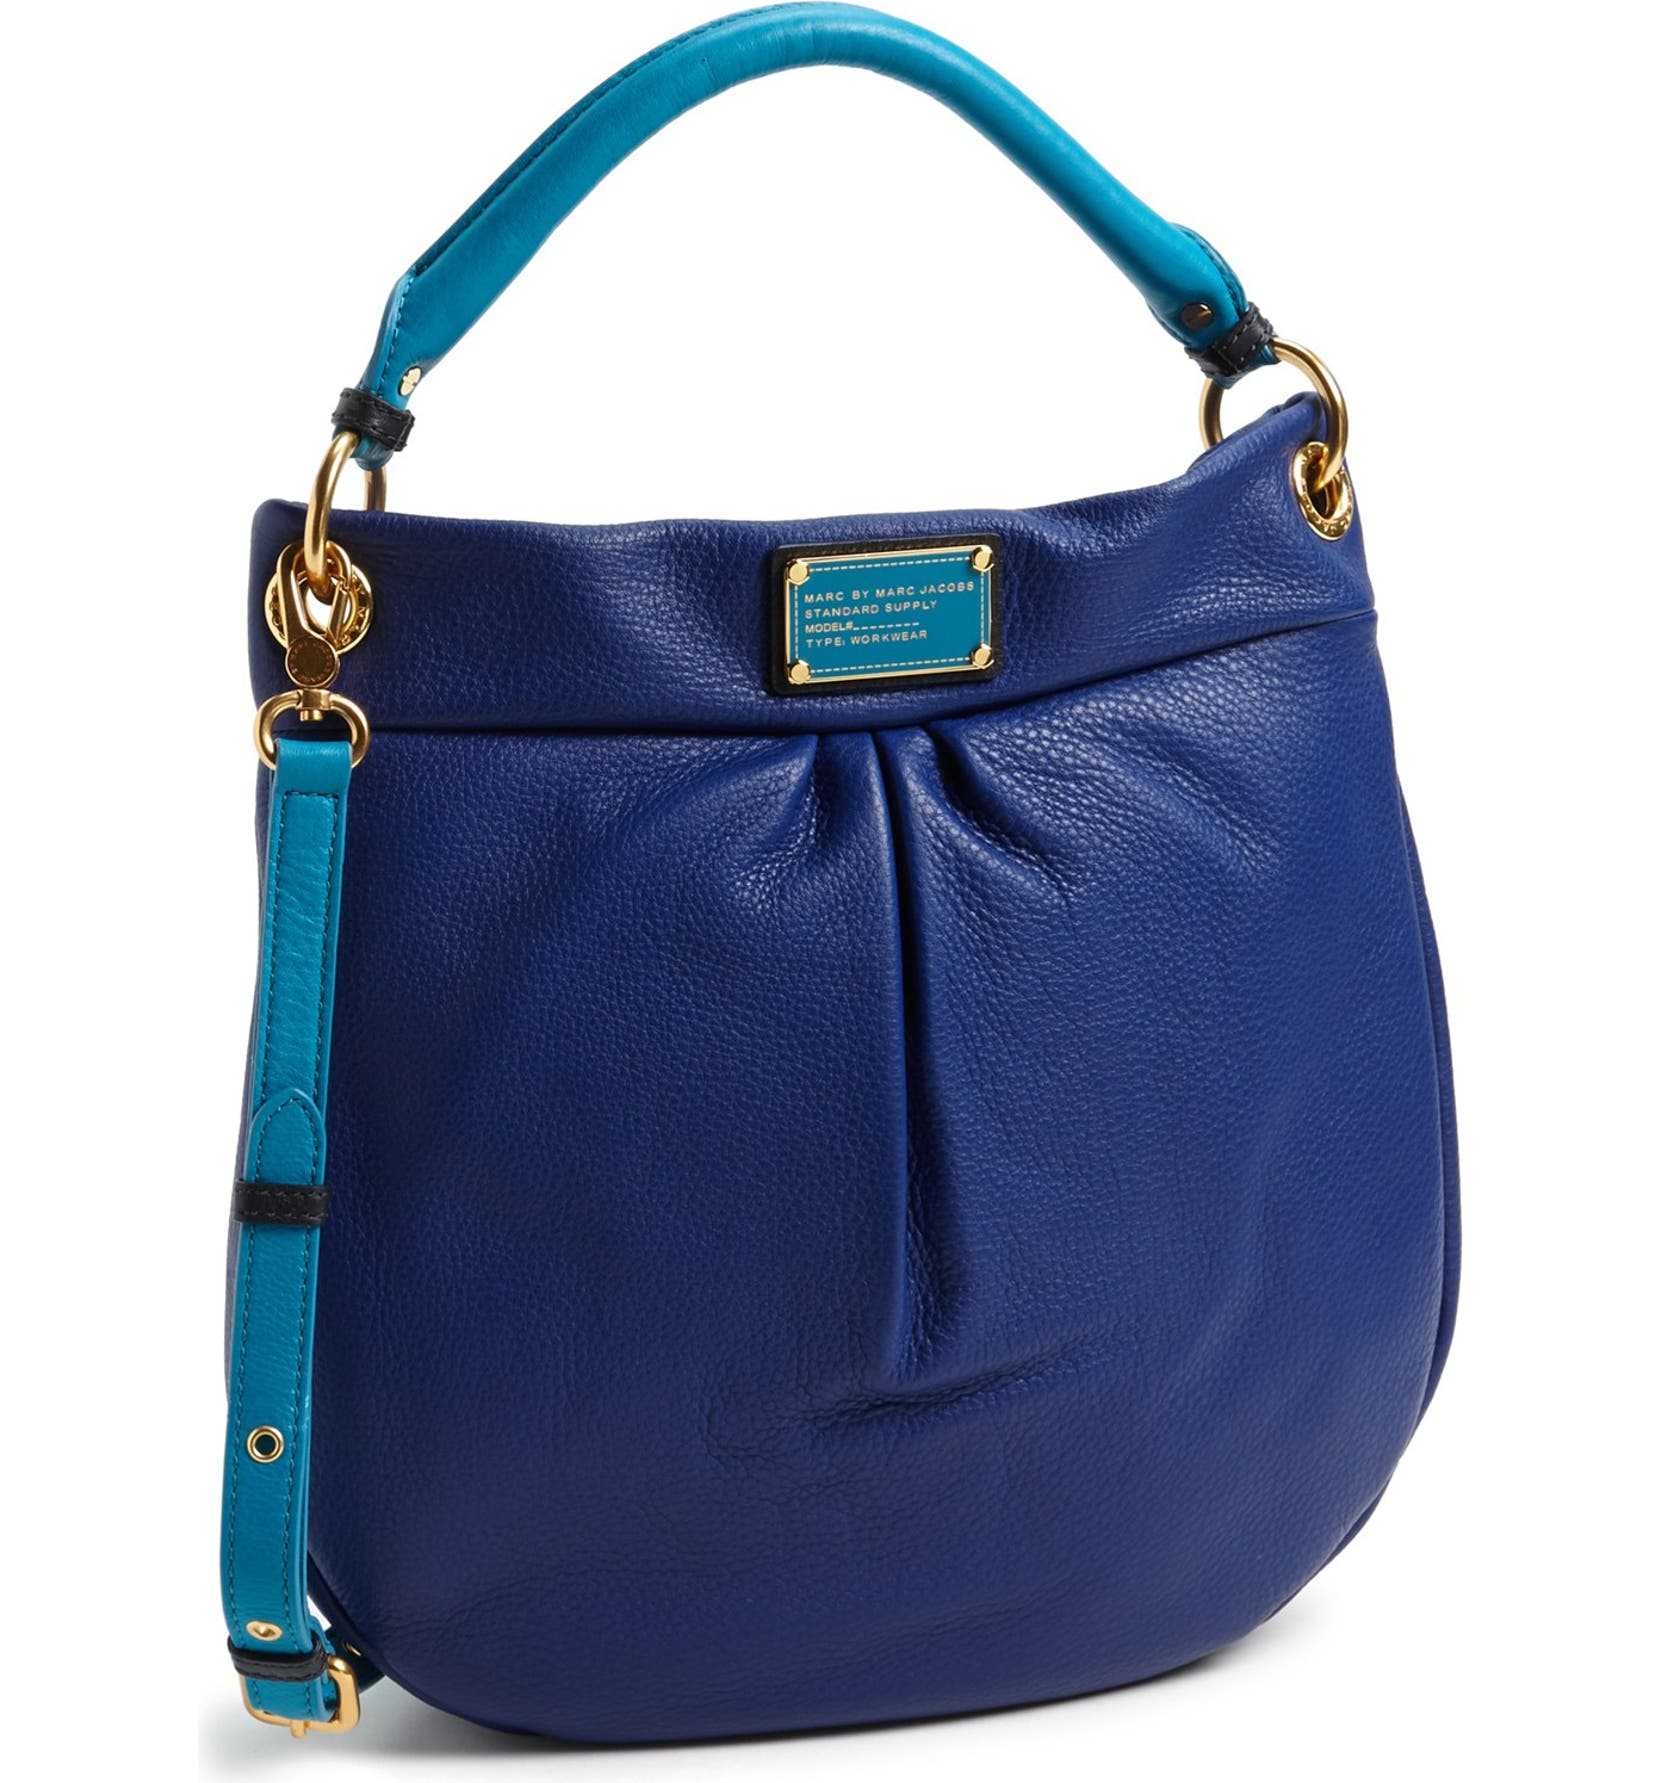 72d154b5c91 MARC BY MARC JACOBS 'Classic Q - Hillier' Leather Hobo | Nordstrom